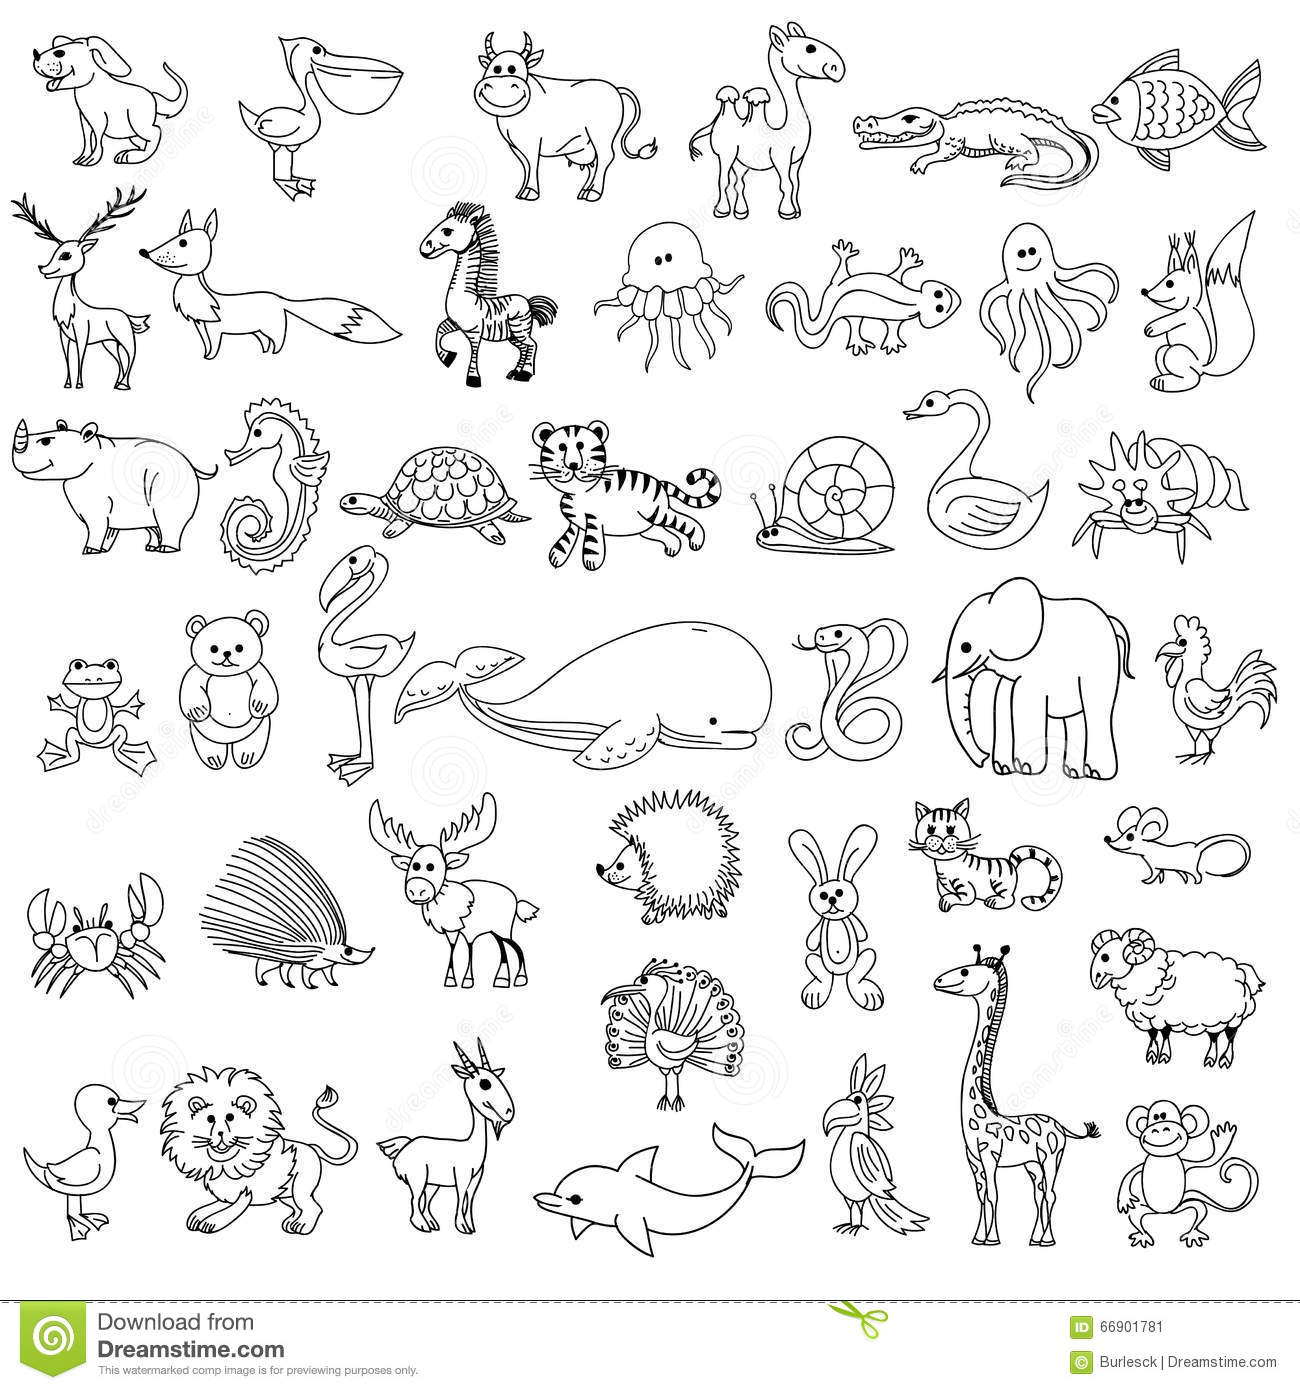 doodle animals childrens drawing stock vector   image 66901781